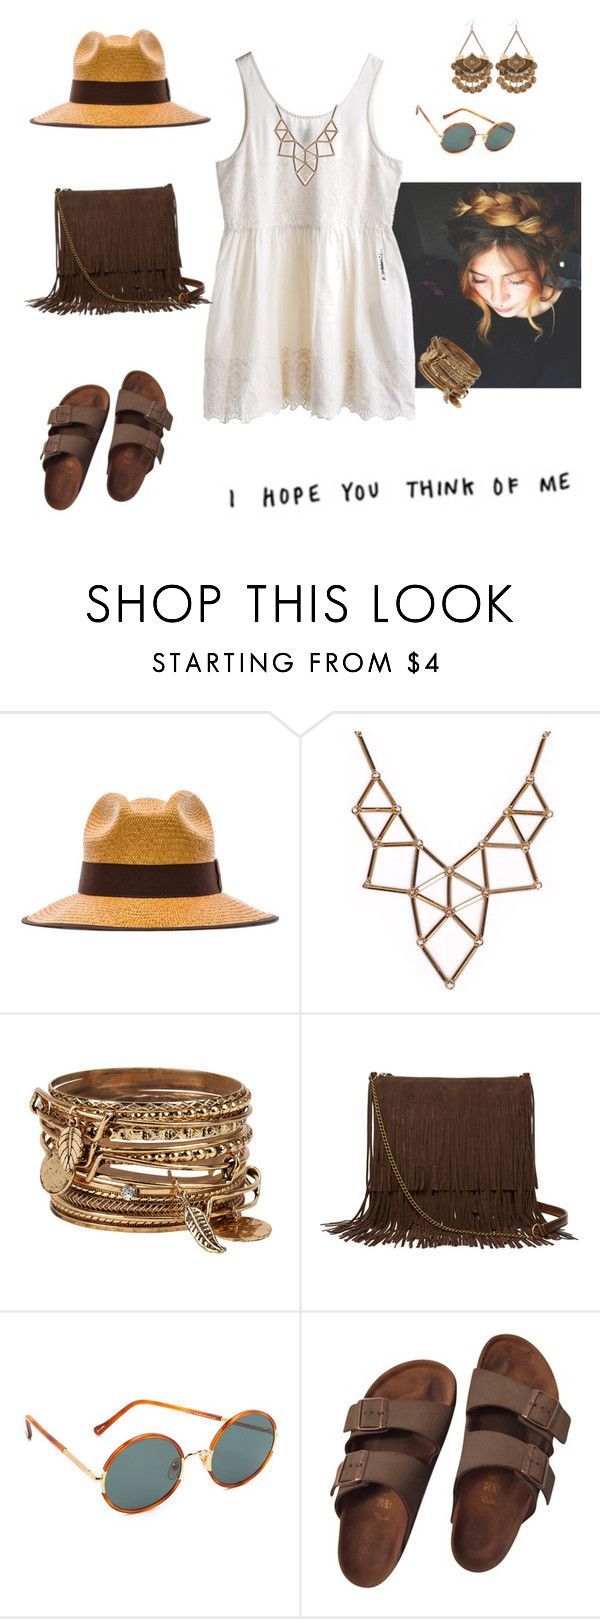 """""""I hope you think of me"""" by mrsfreespirit ❤ liked on Polyvore featuring MTWTFSS Weekday, Artesano, Chicnova Fashion, ALDO, T-shirt & Jeans, Sunday Somewhere and Birkenstock"""